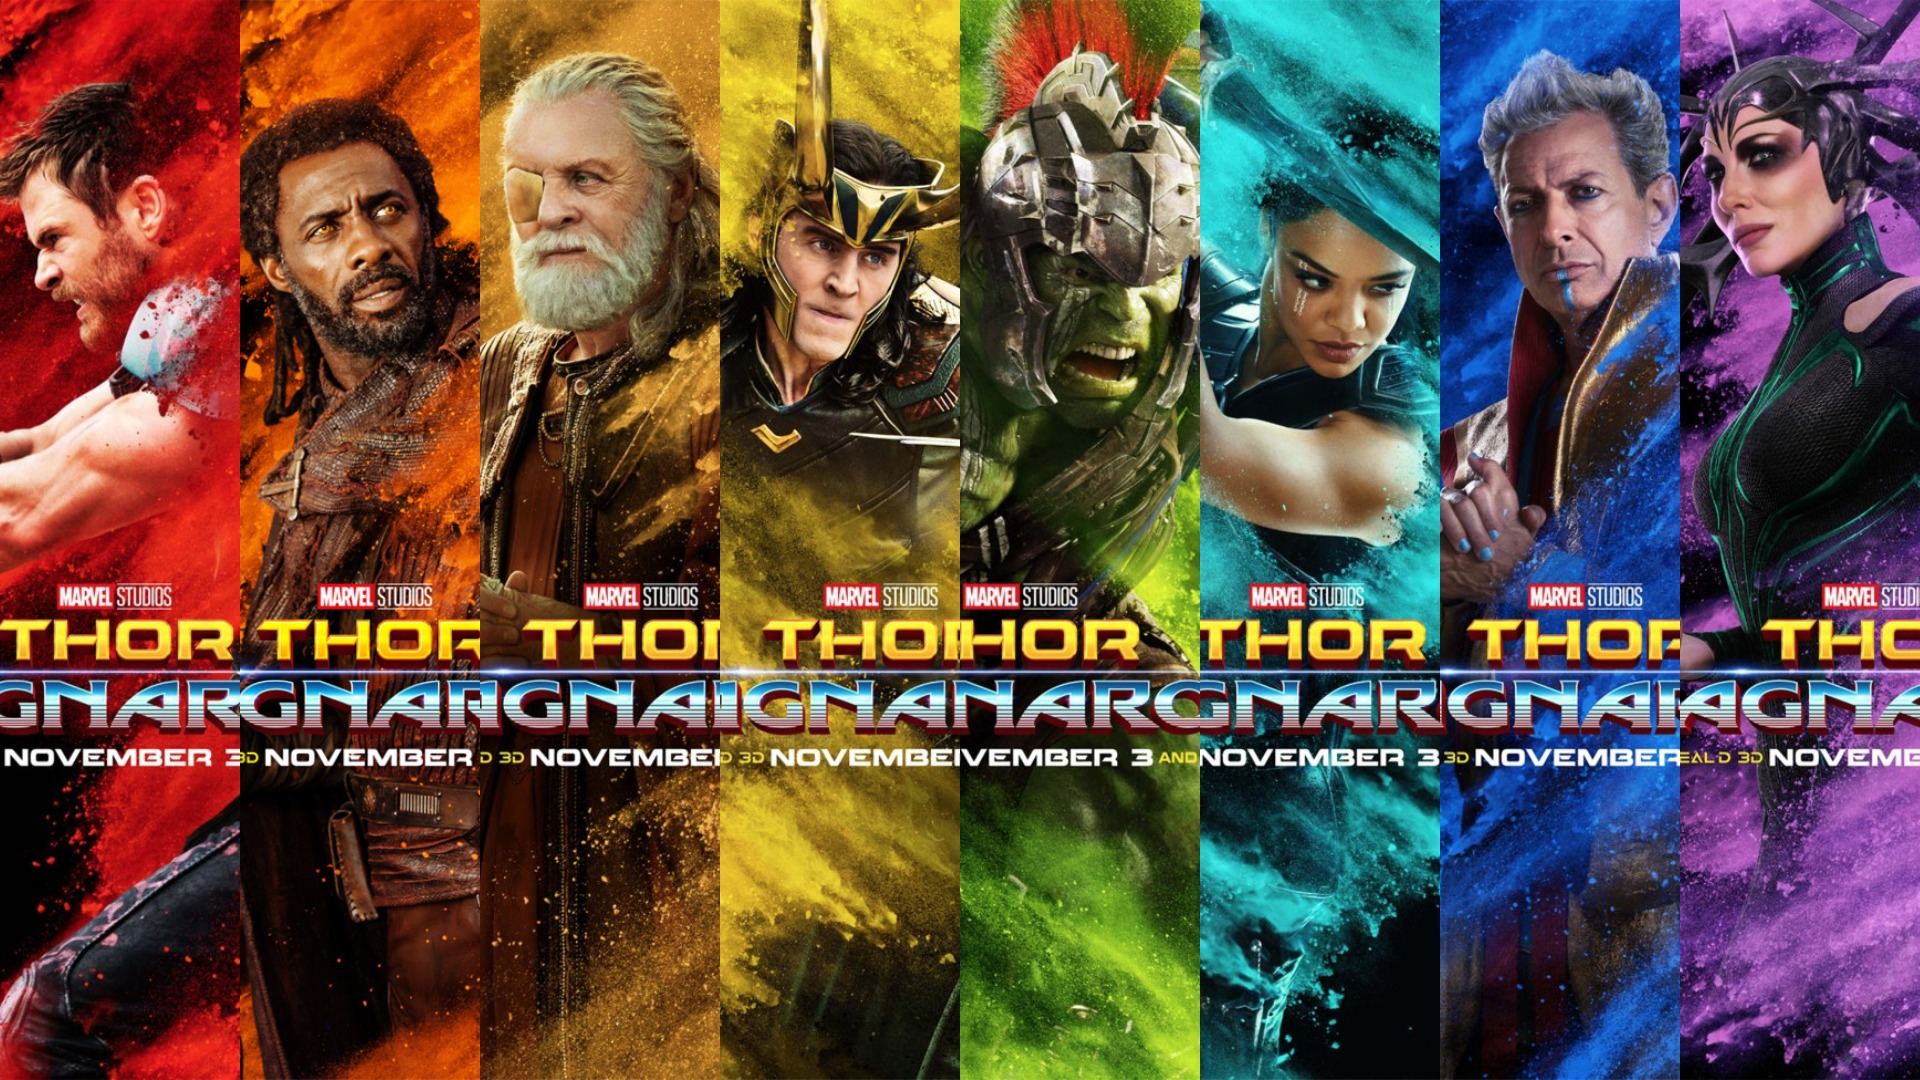 Wallpaper Superhero Marvel 3d Thor Ragnarok Would Have Been Perfect If It Could Have